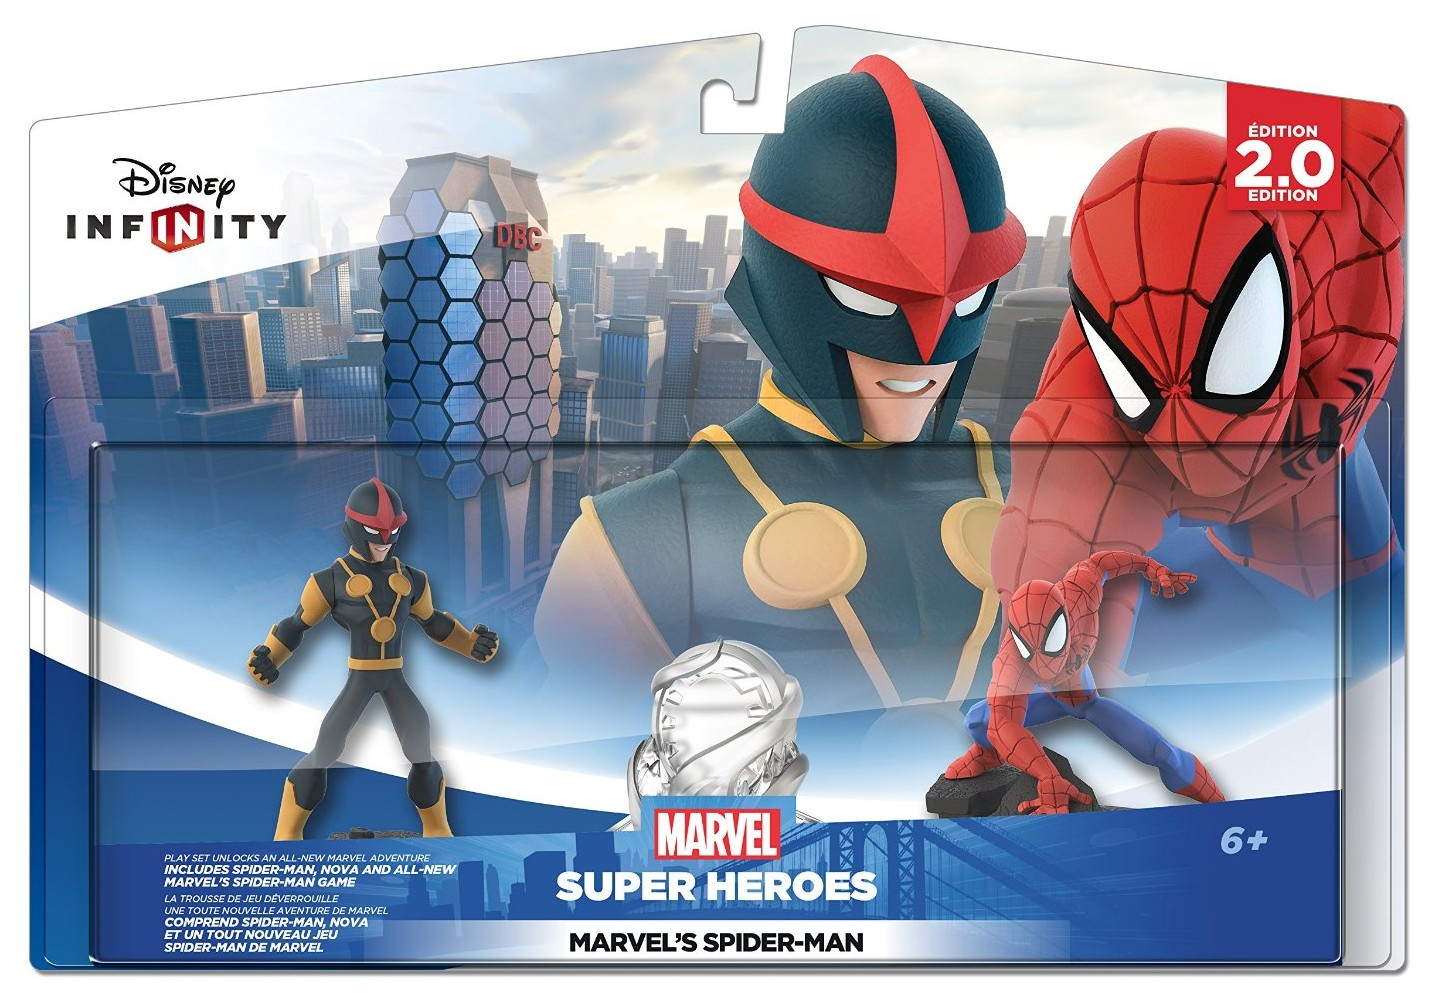 Disney Infinity 20 Play Set Spiderman Car Interior Design